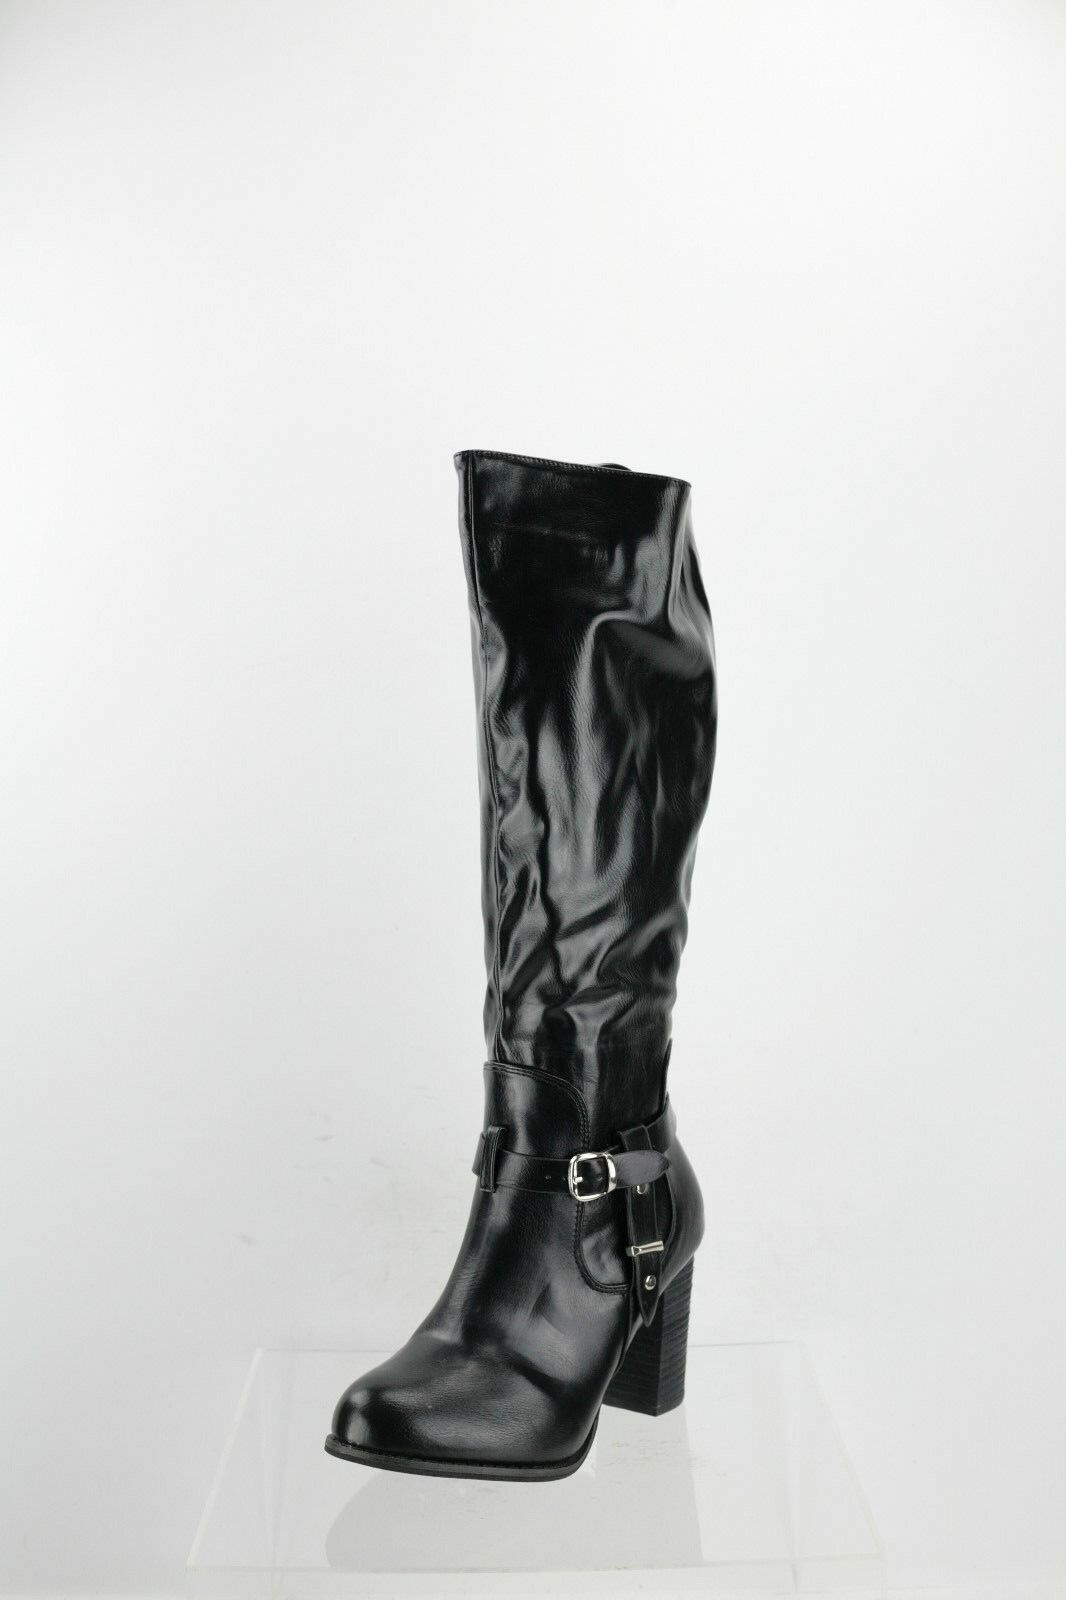 DbDk Greer-1 Black Heeled Knee High Boots Women's Shoes Size 9 M NEW